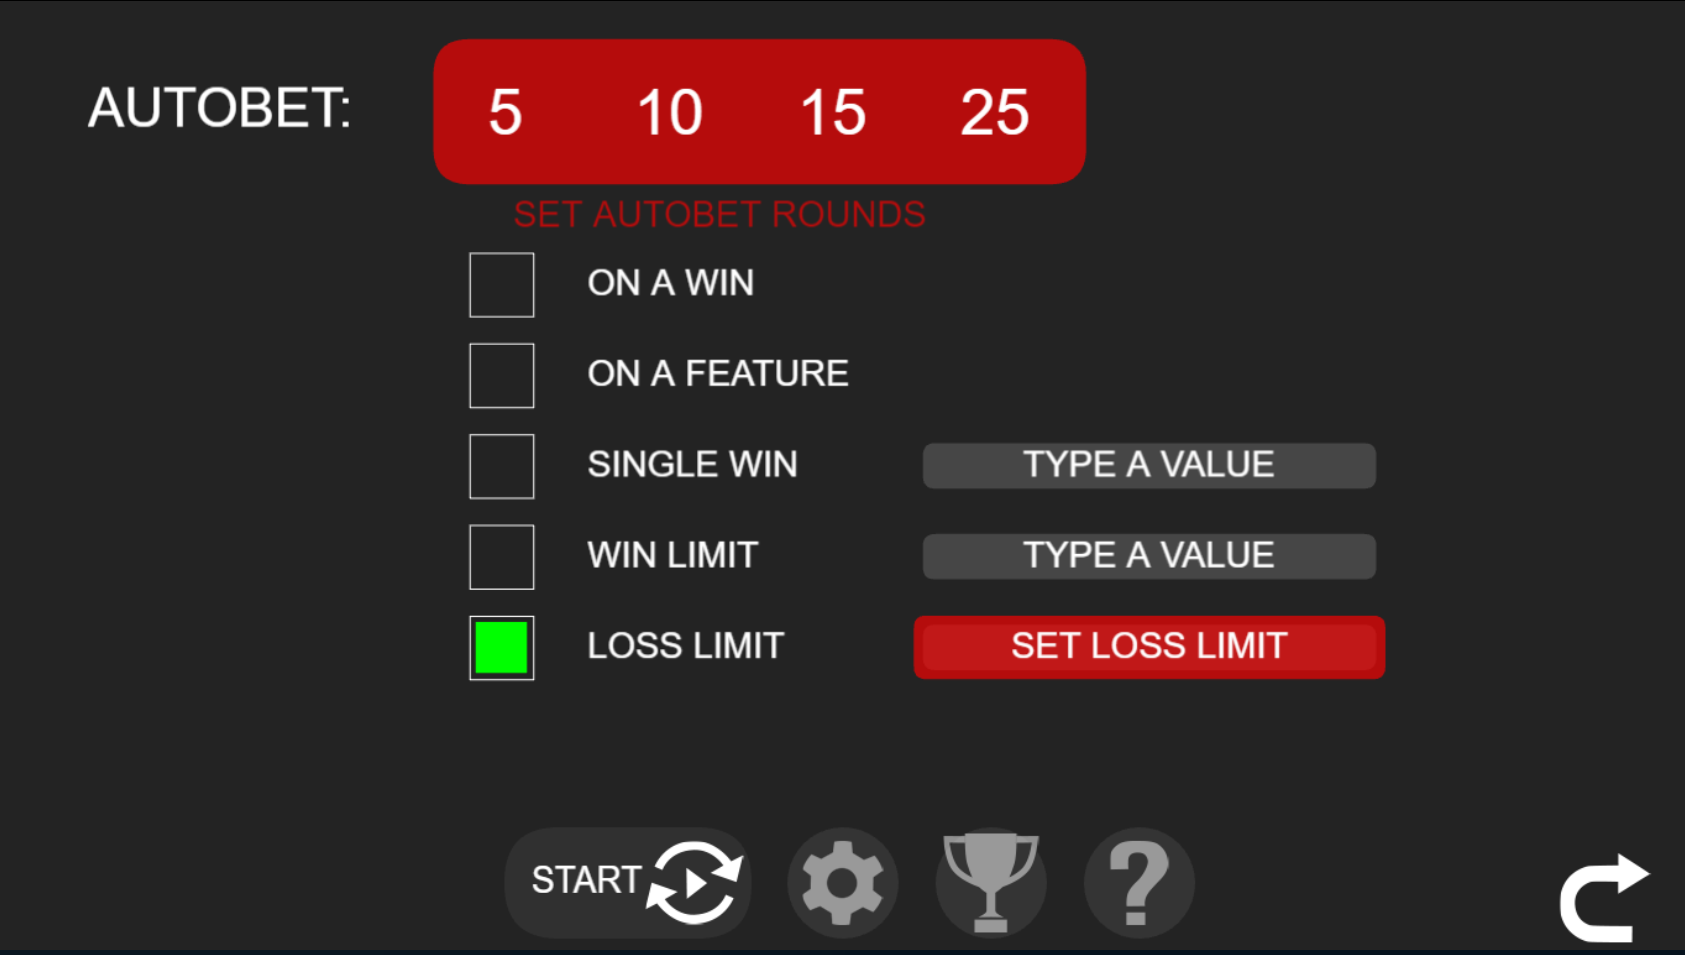 Sharknado autobet settings for uk  players.png